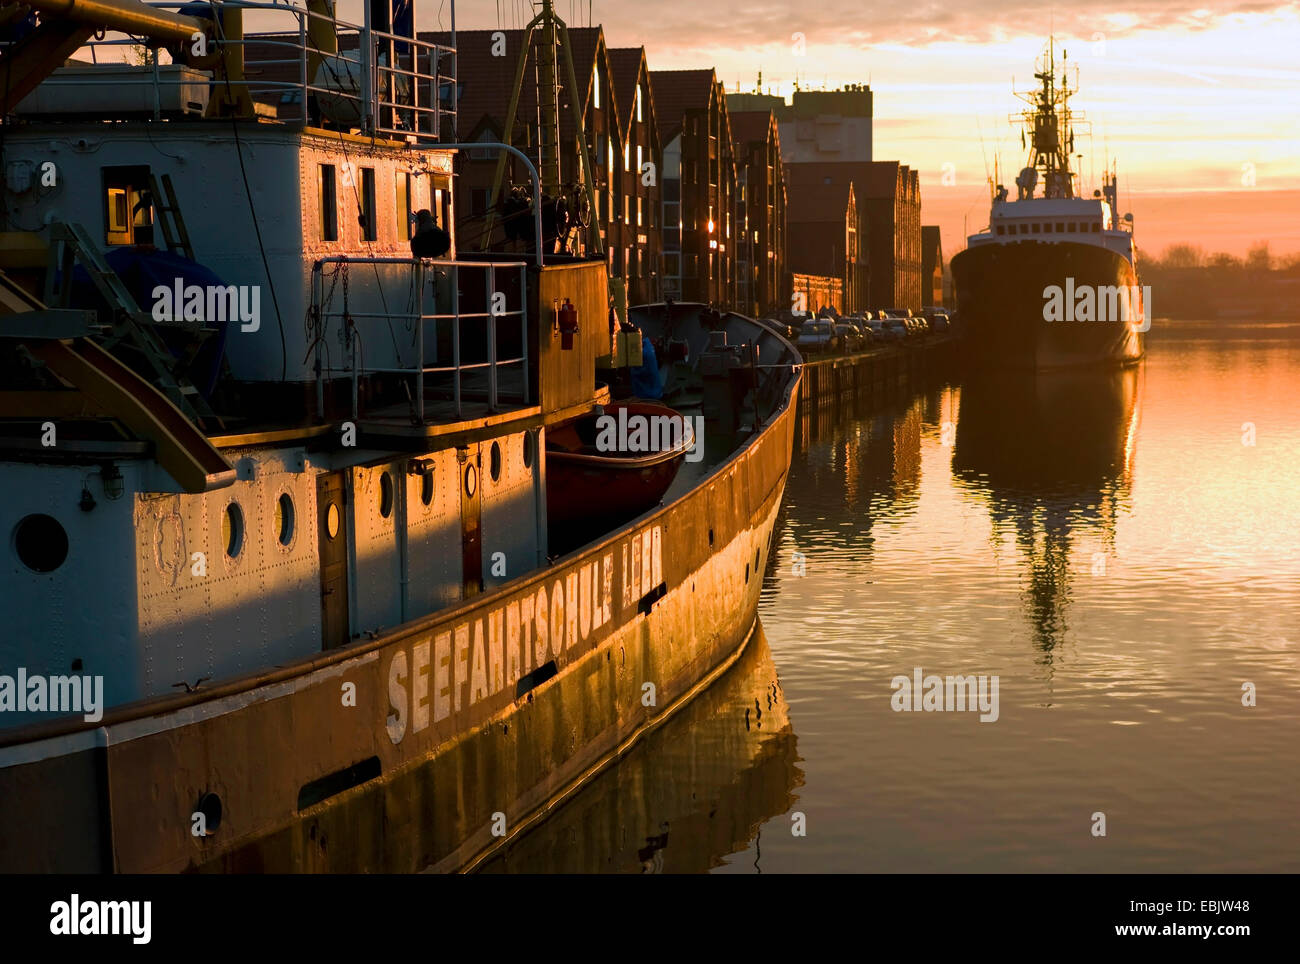 training ship of the nautical college Leer at the landing bridge, Germany, Lower Saxony, Leer - Stock Image